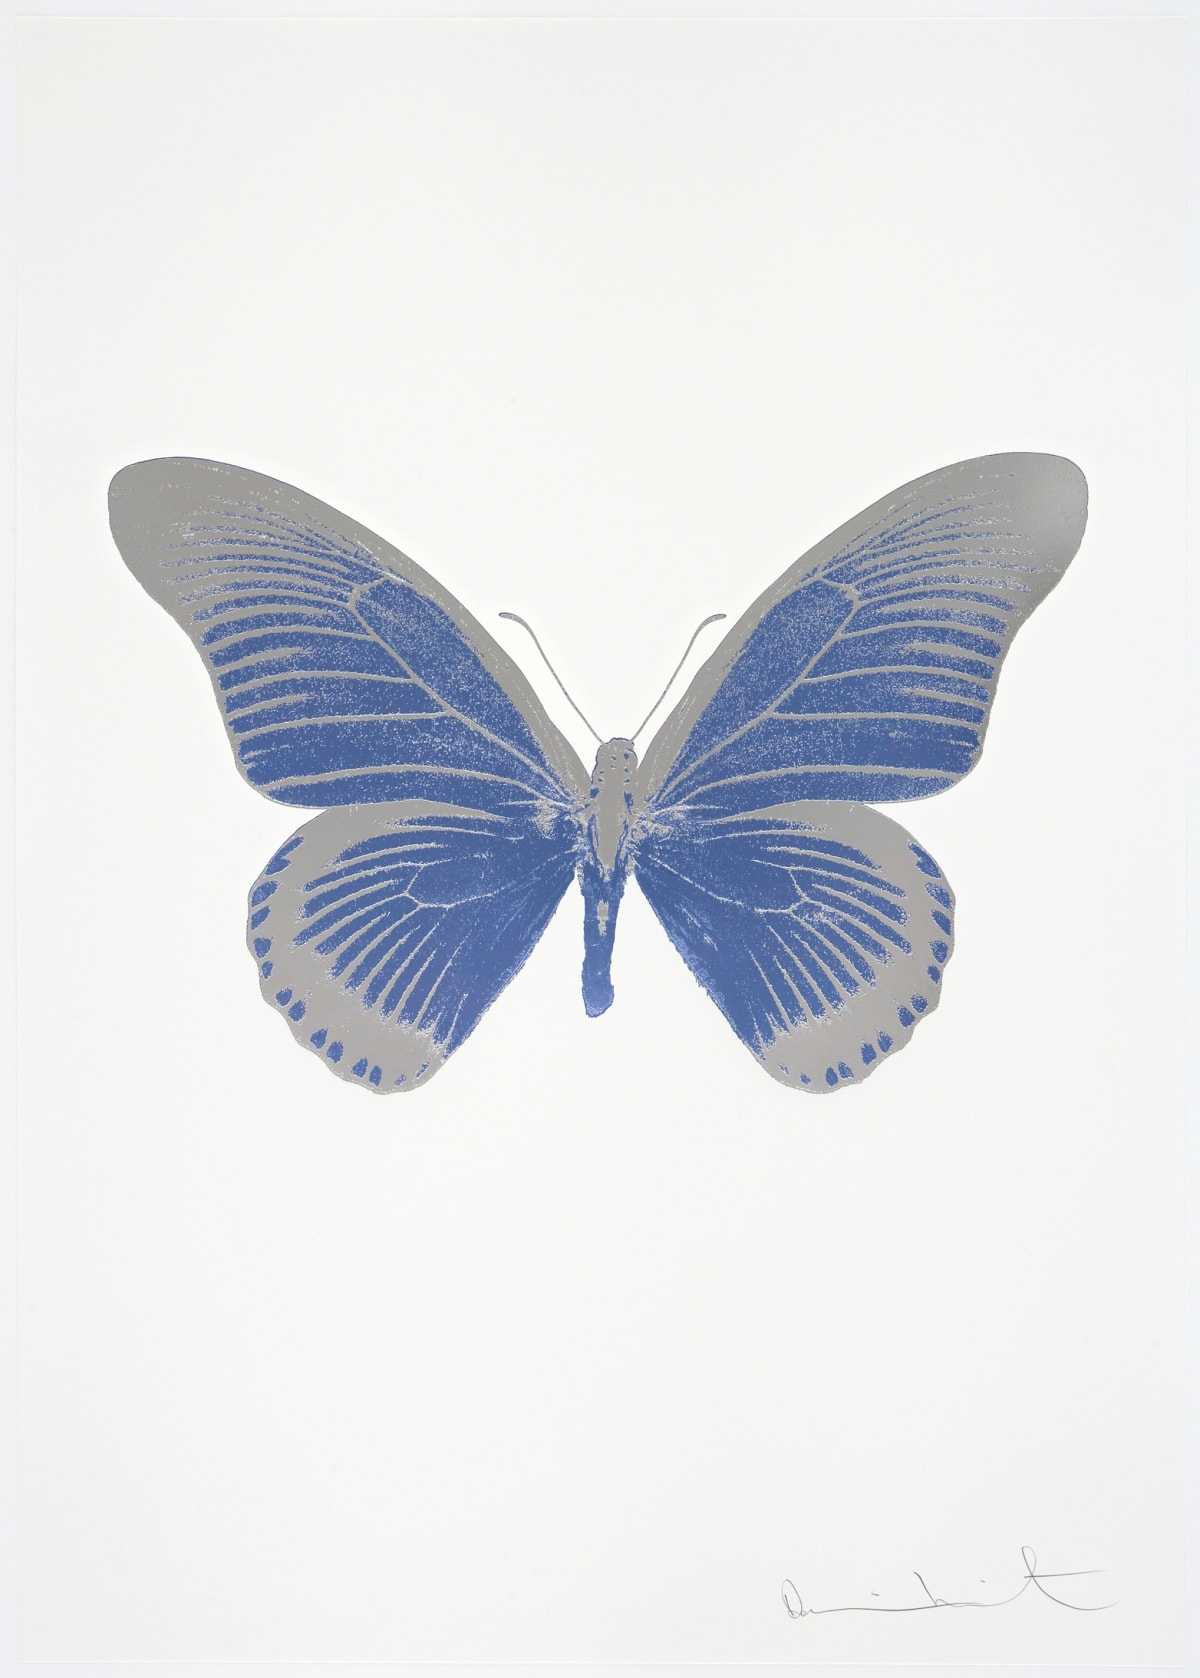 Damien Hirst The Souls IV - Cornflower Blue/Silver Gloss/Blind Impression Damien Hirst butterfly foil print for sale Damien Hirst print for sale , 2010 2 colour foil block on 300gsm Arches 88 archival paper. Signed and numbered. Published by Paul Stolper and Other Criteria 72 x 51cm OC8050 / 1418-73 Edition of 15